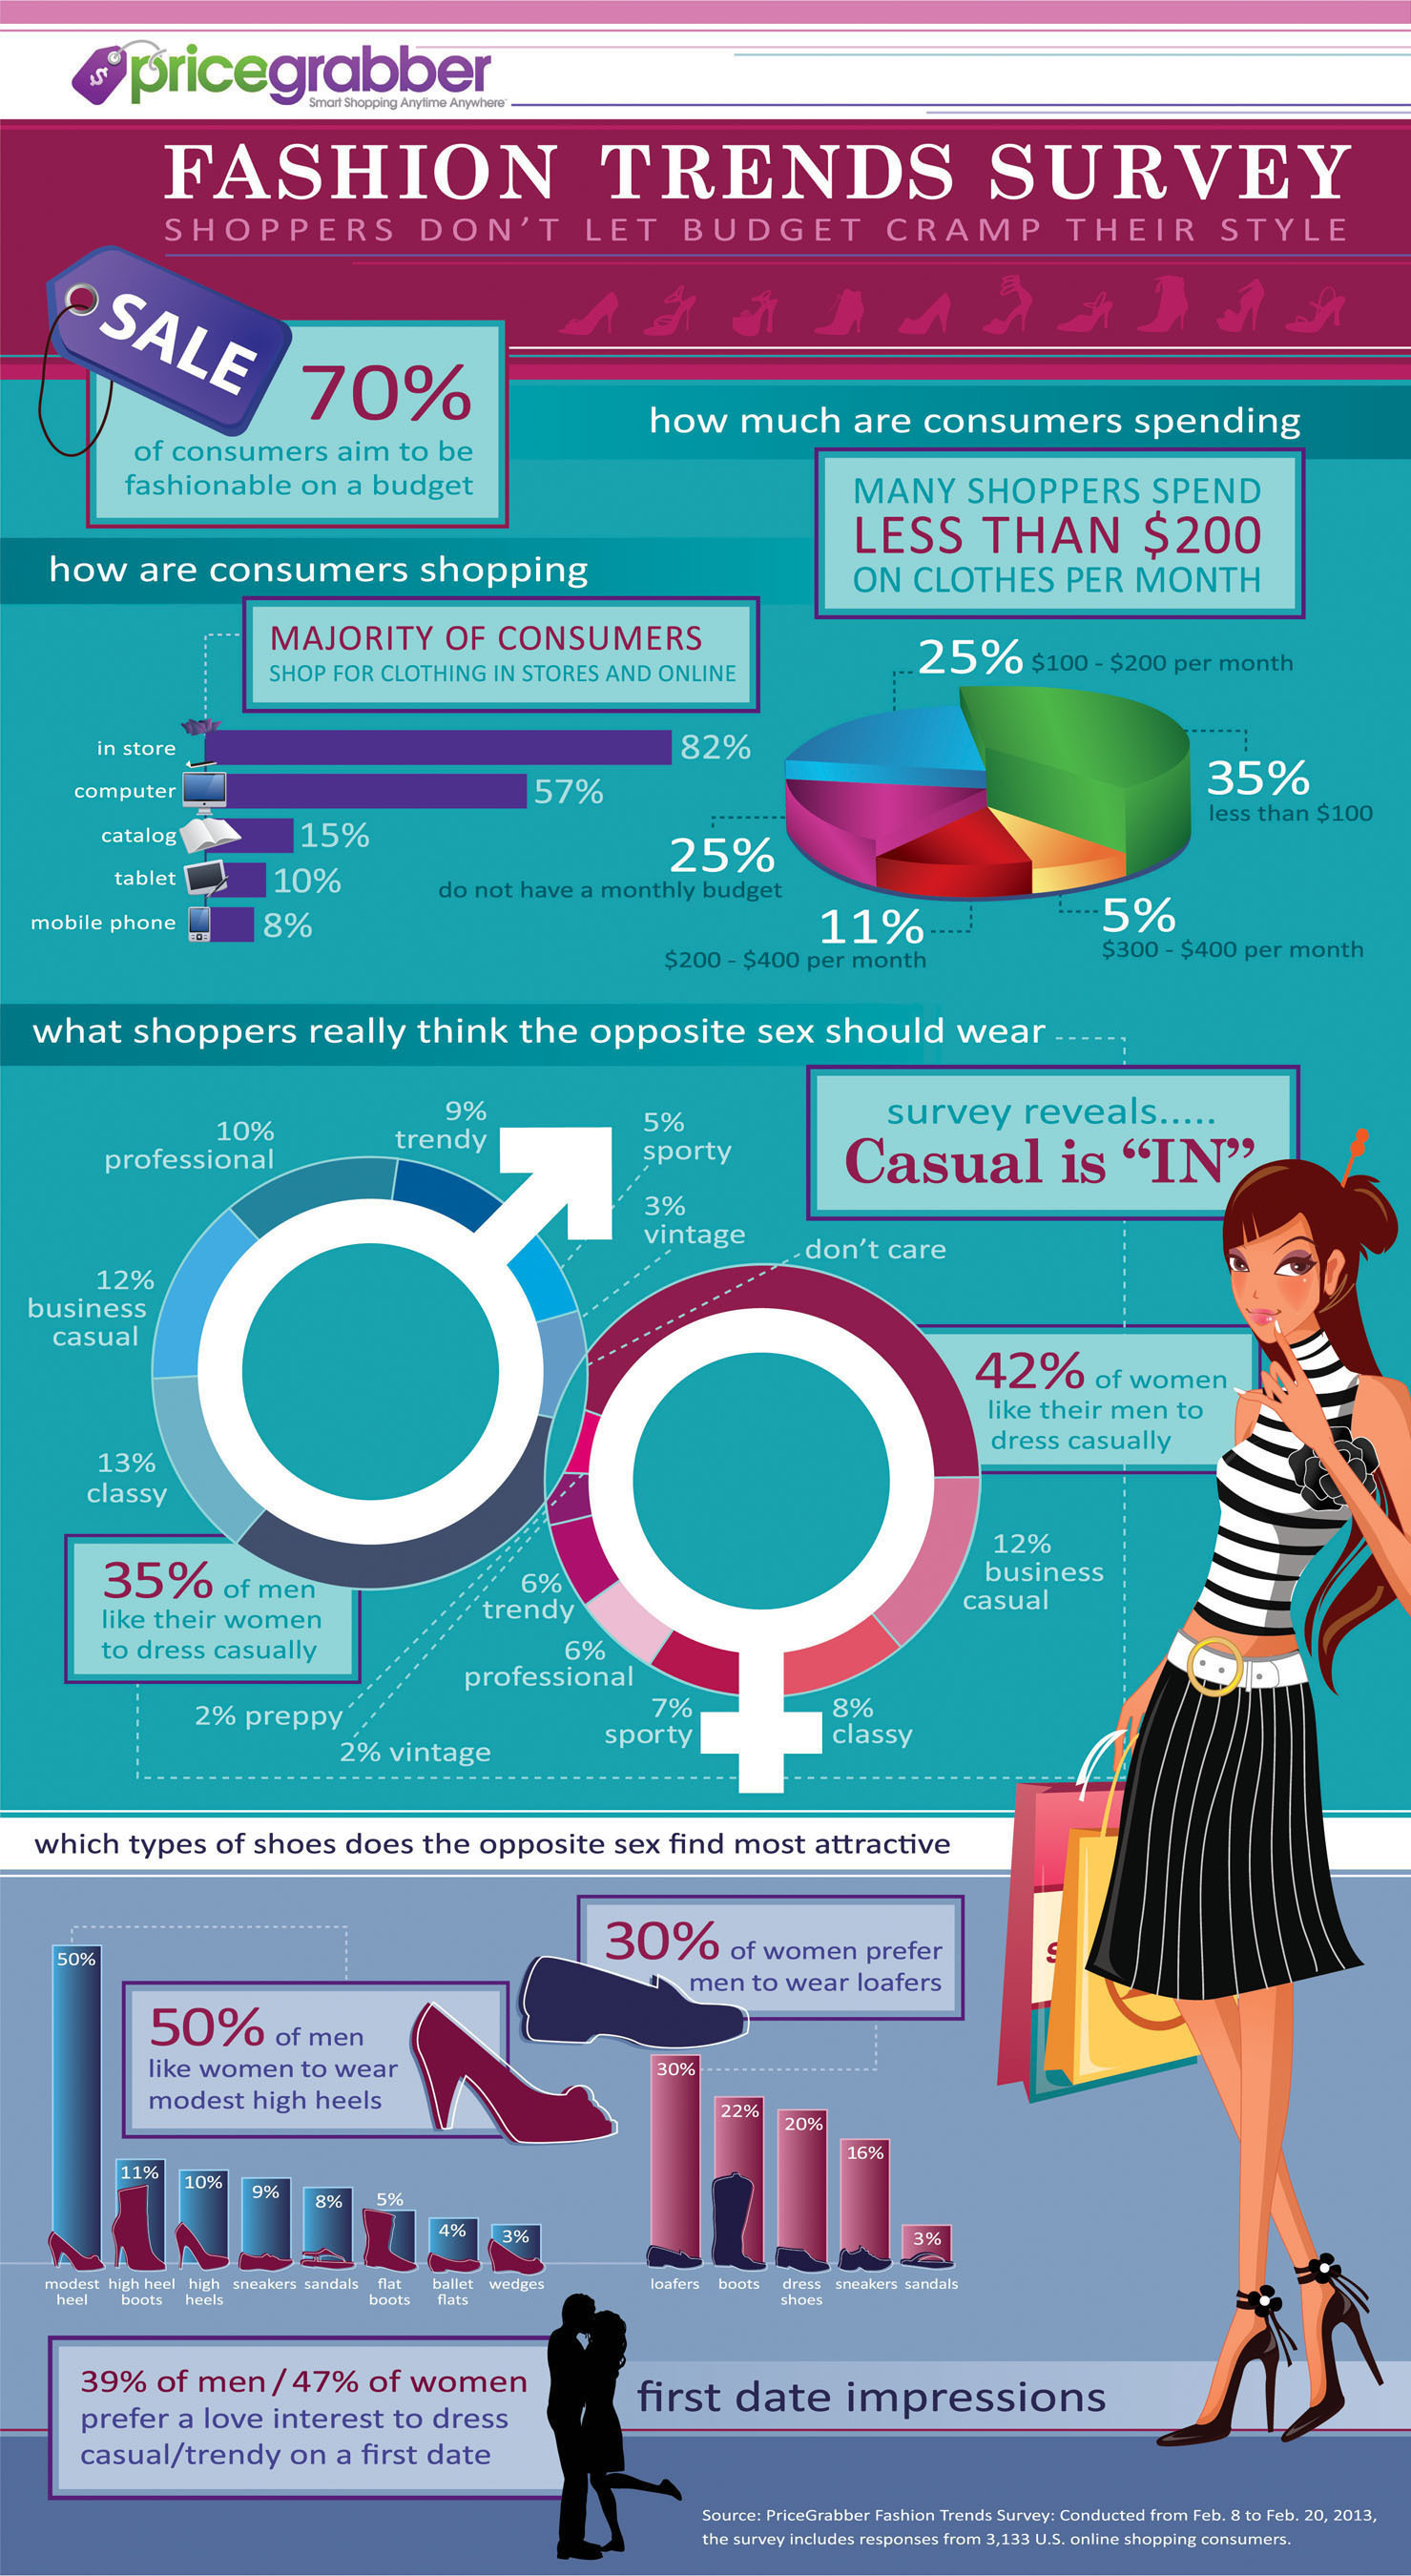 PriceGrabber Fashion Trends Survey Reveals Majority of Consumers Aim to Stay Fashionable on a Budget.  ...